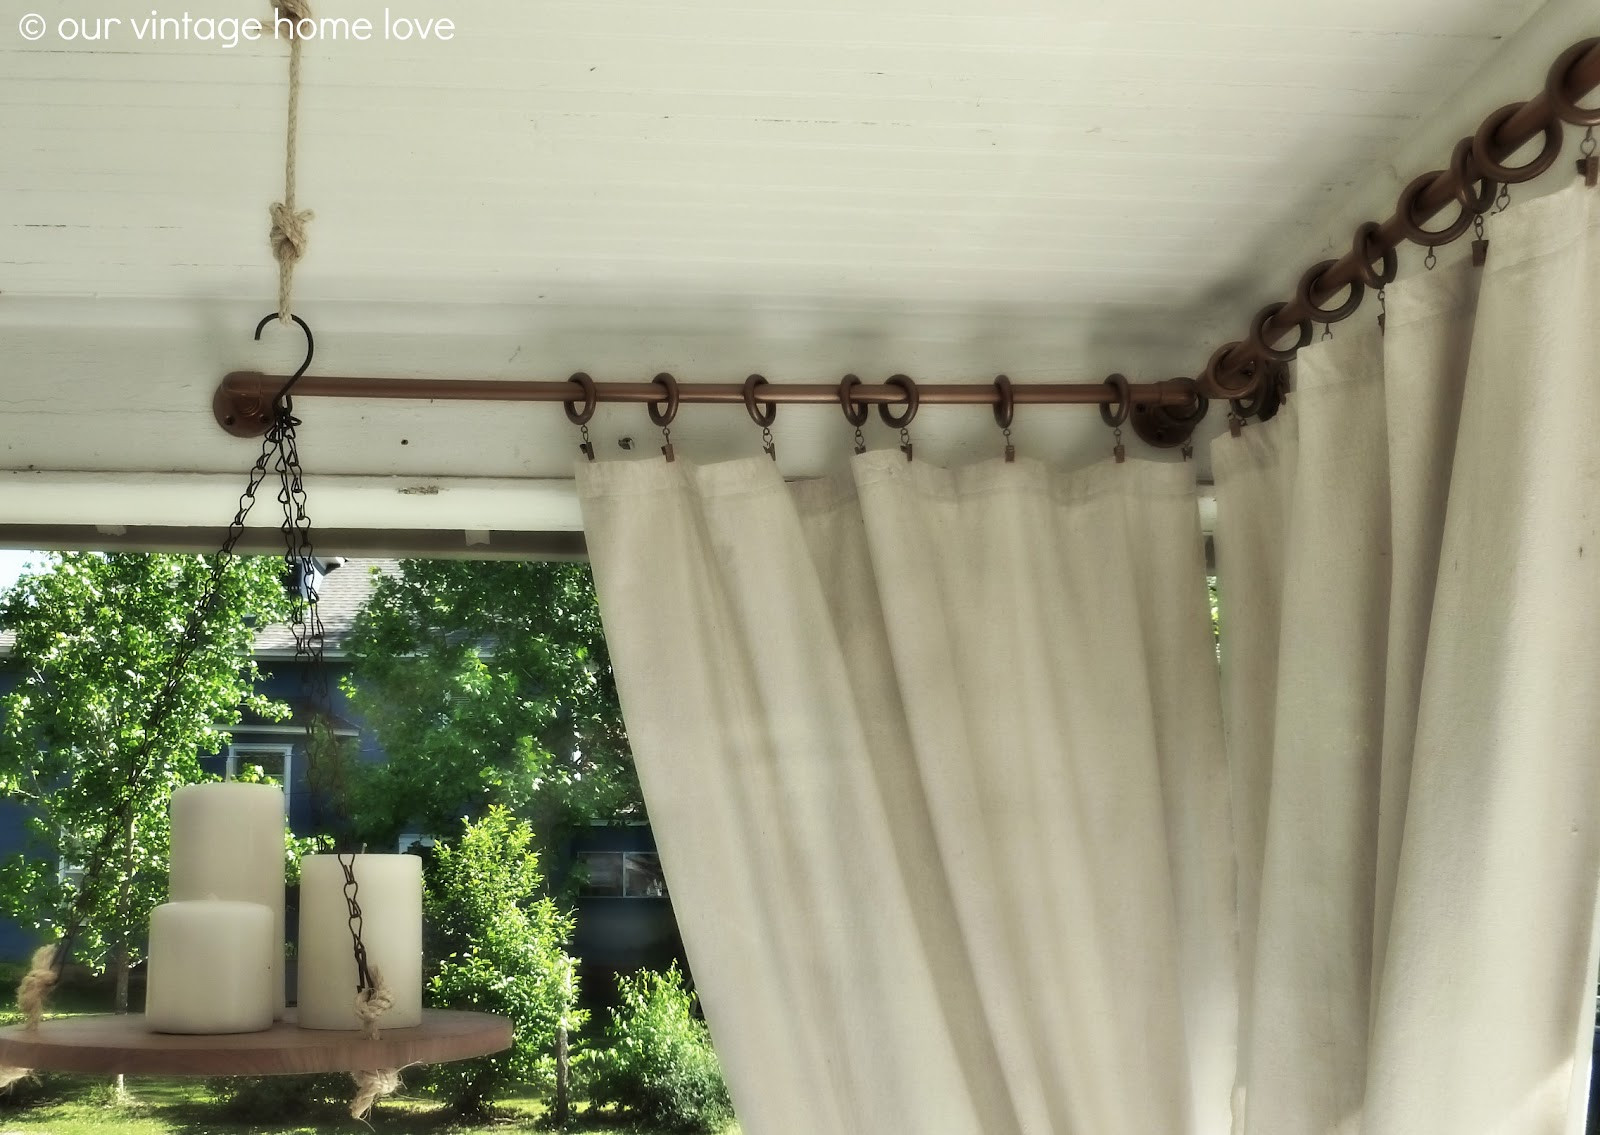 DIY Outdoor Curtain Rod  vintage home love Back Side Porch Ideas For Summer and An